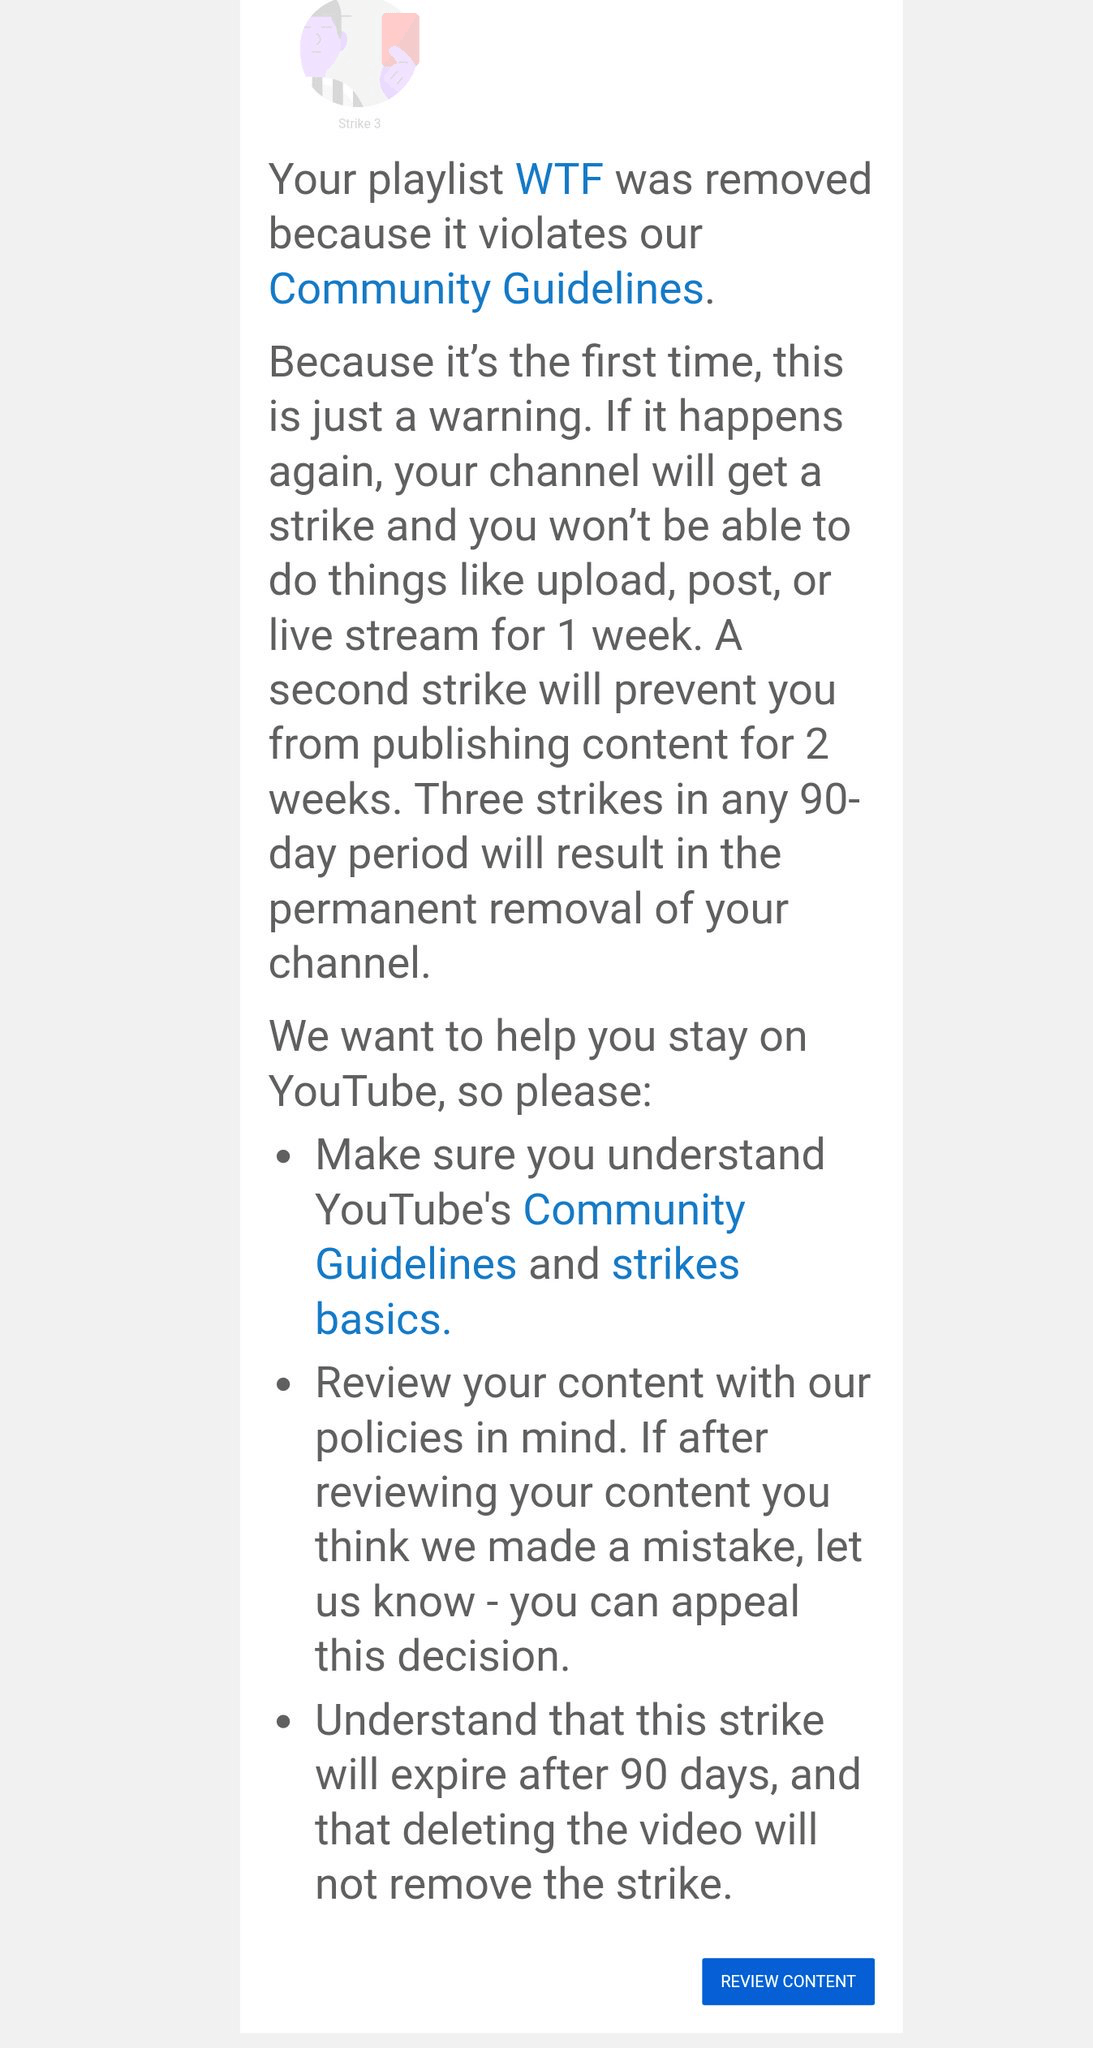 The email Sheila Allen received from YouTube informing her of the community guidelines warning.